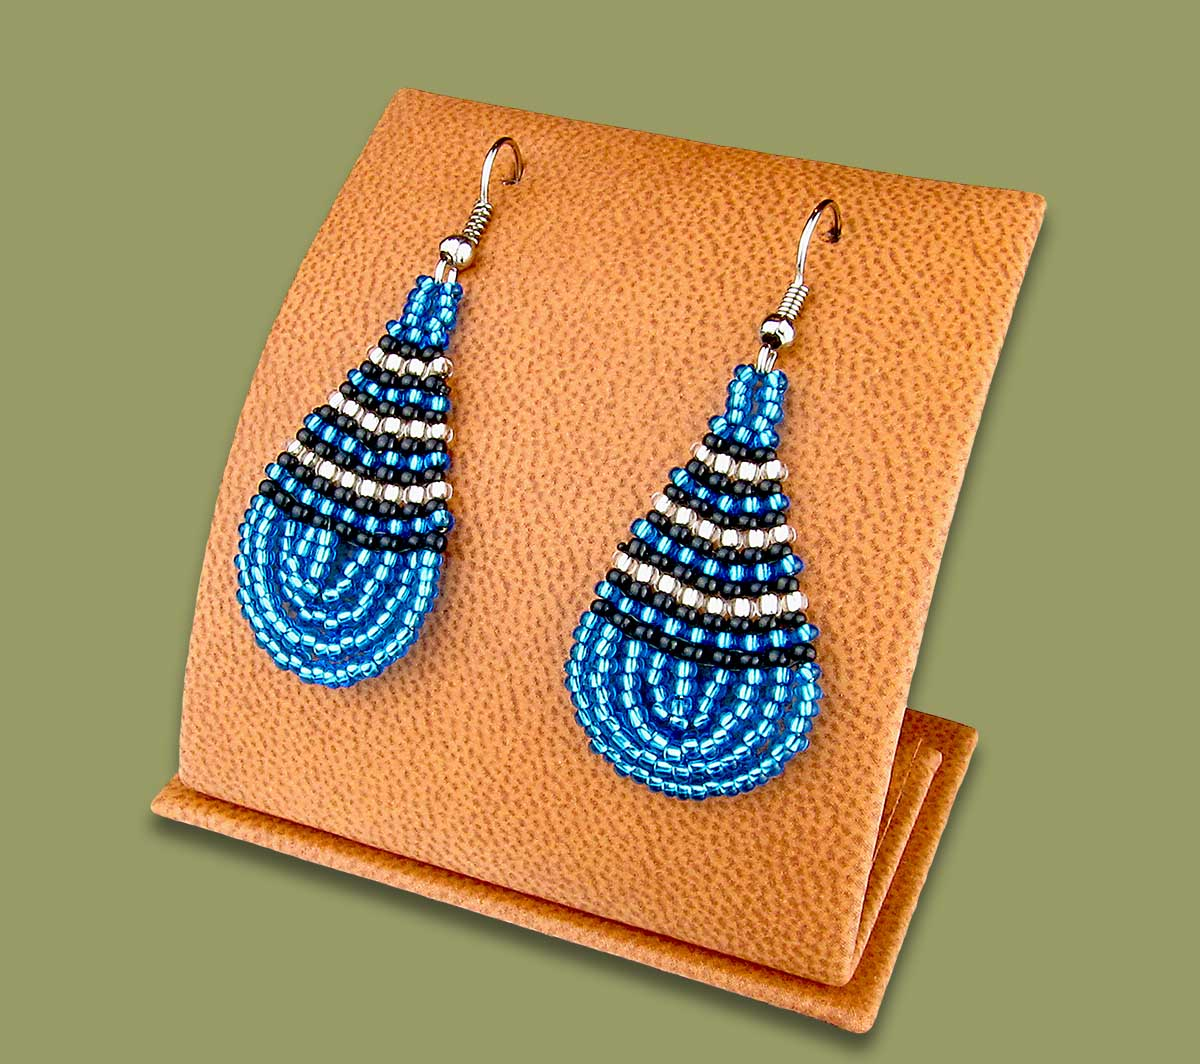 Small Beaded Ear Rings Tear Drop Blue Silver Black